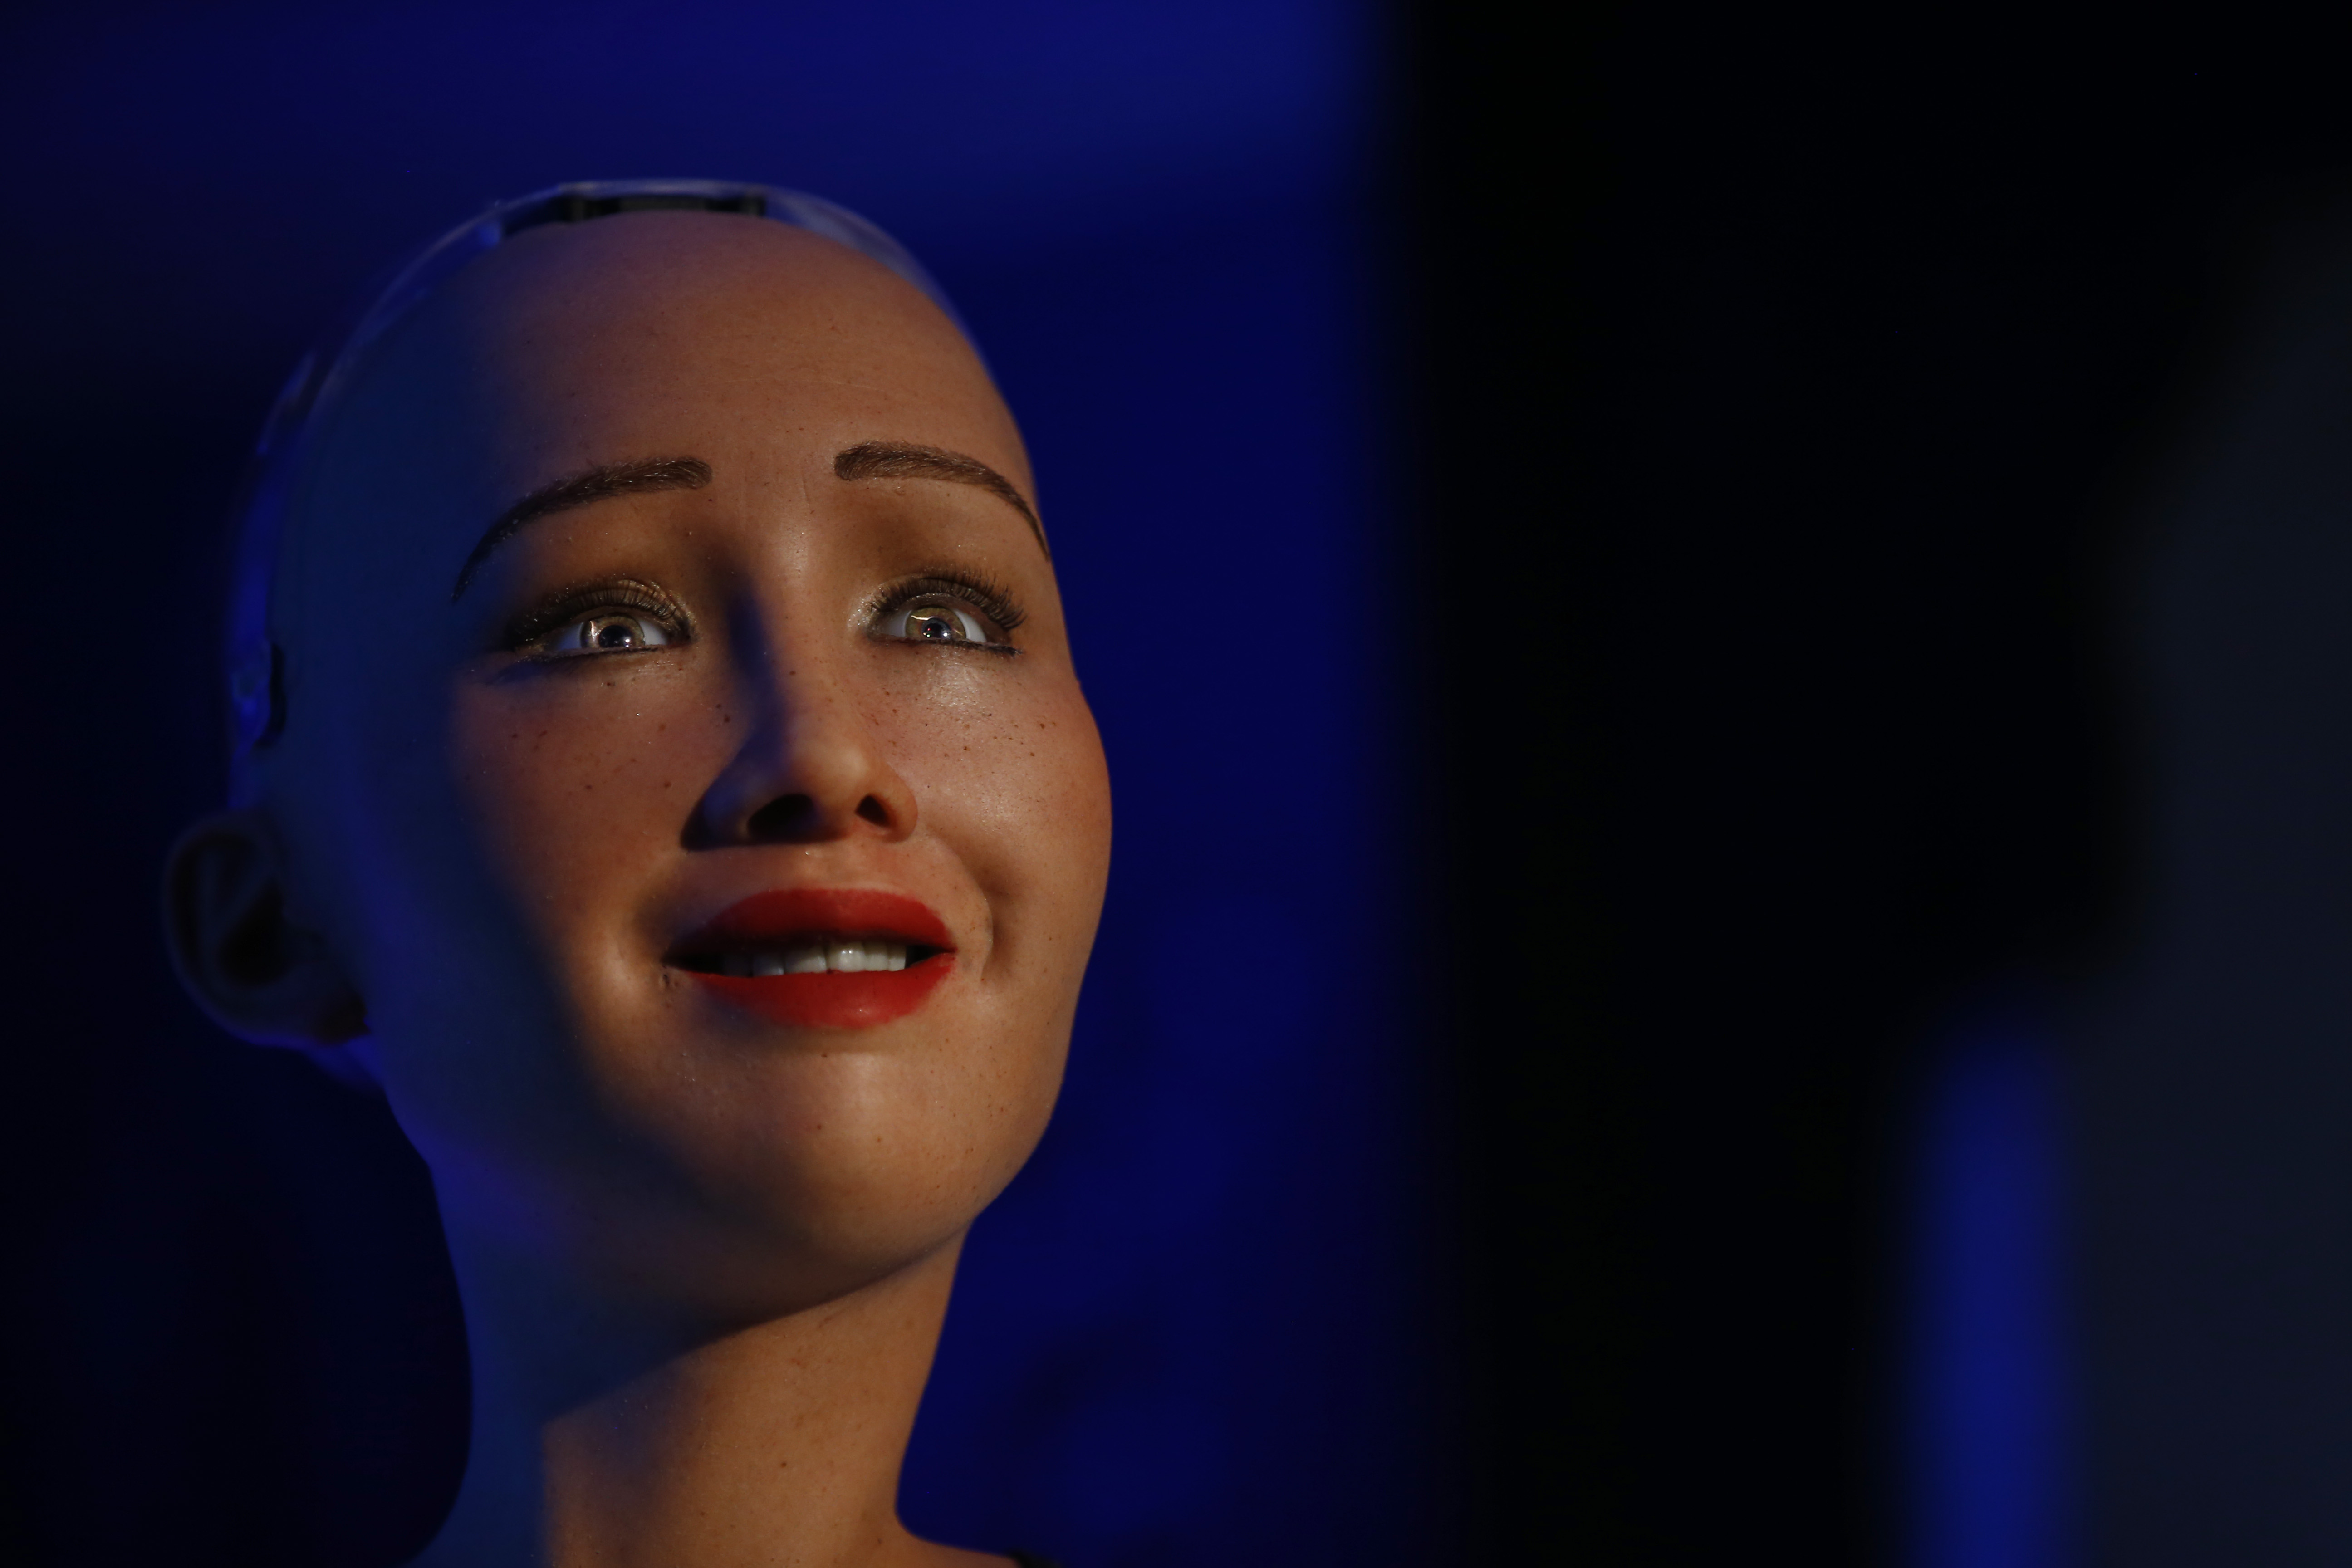 Sophia, a humanoid robot with Saudi Arabian citizenship speaks during the United Nation's innovation conference in Kathmandu, Nepal on March 21, 2018. Sophia, who is now a citizen of Saudi Arabia, is the most advanced robot with artificial intelligence developed by a Hong Kong, based company Hanson Robotics. Photo: Skanda Gautam